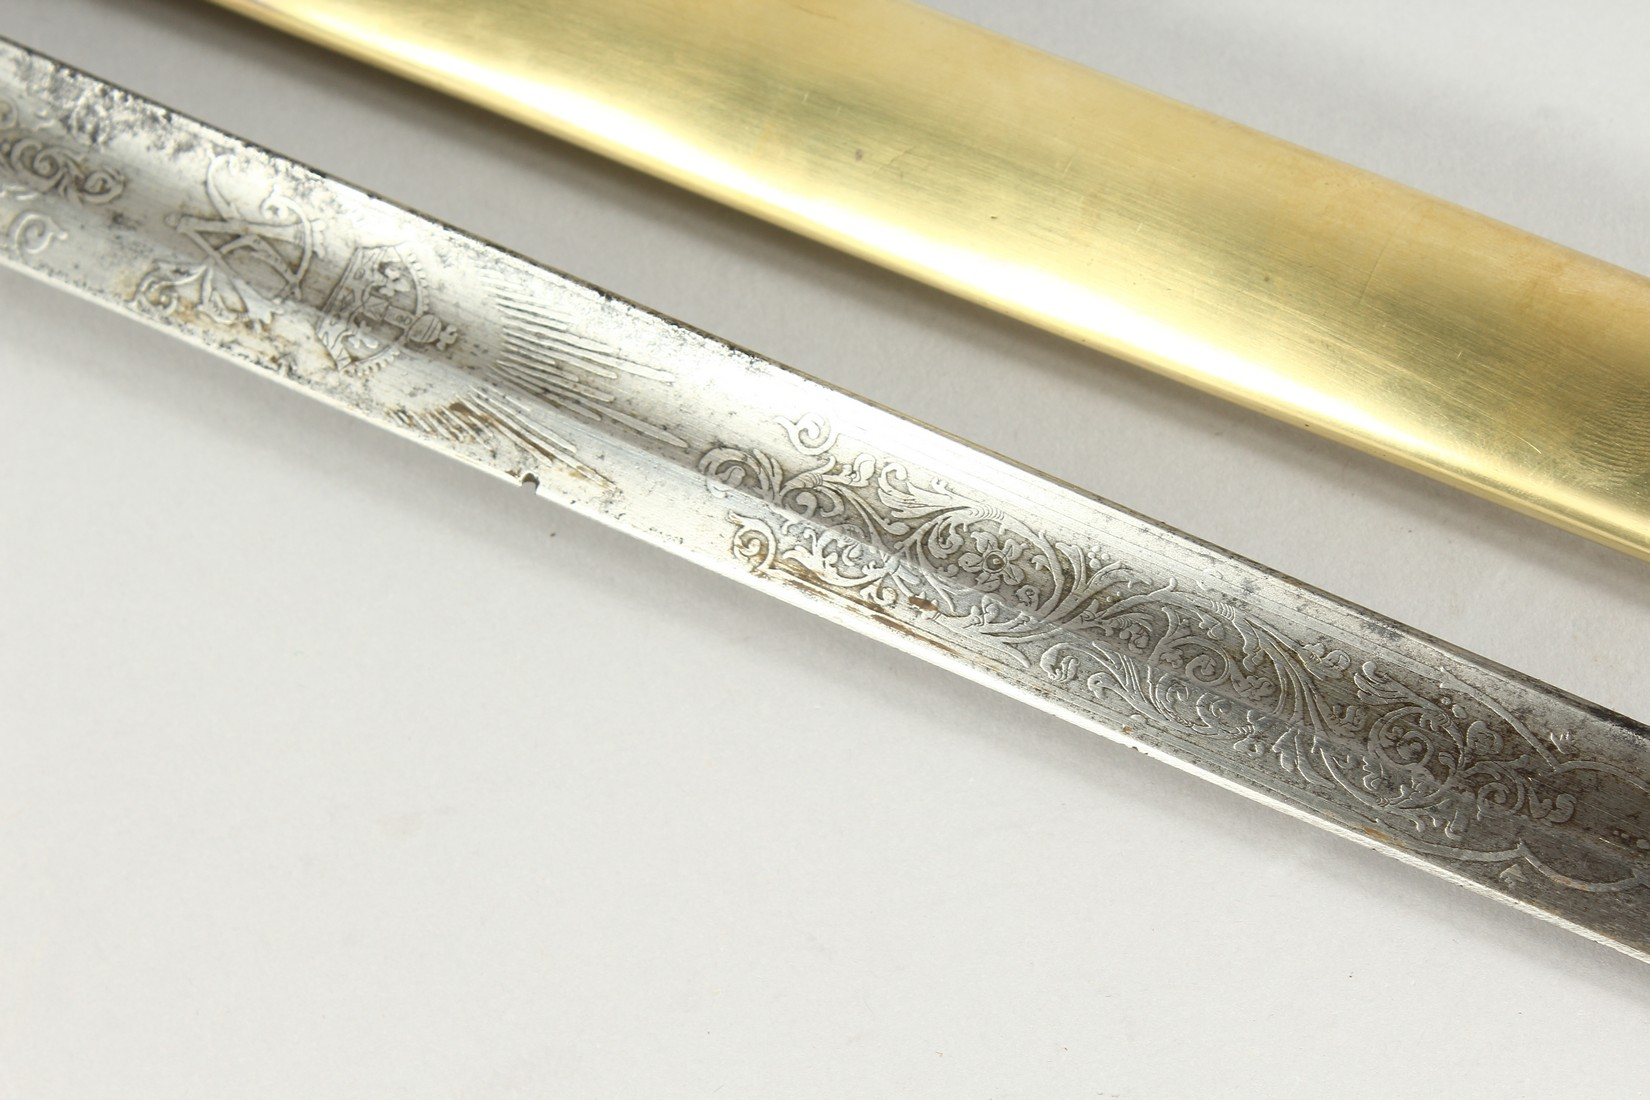 A GOOD VICTORIAN NAVAL SWORD with shagreen handle and engraved blade, V R & Crown inc., brown - Image 15 of 25